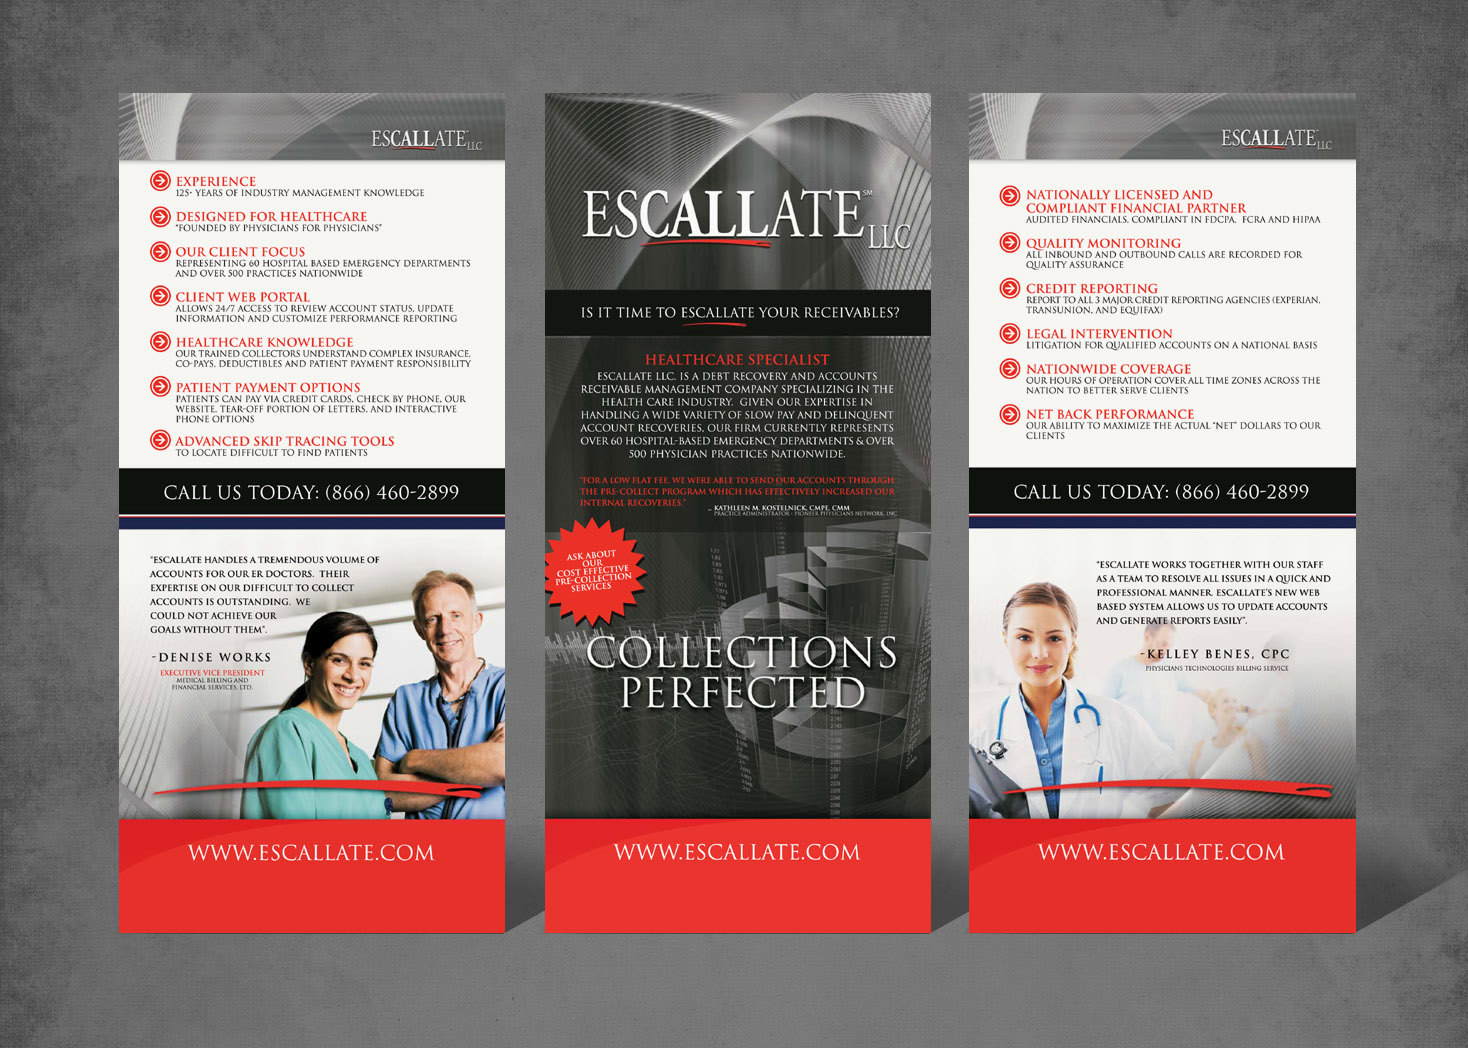 Escallate Tradeshow Booth Design - Lehman Design